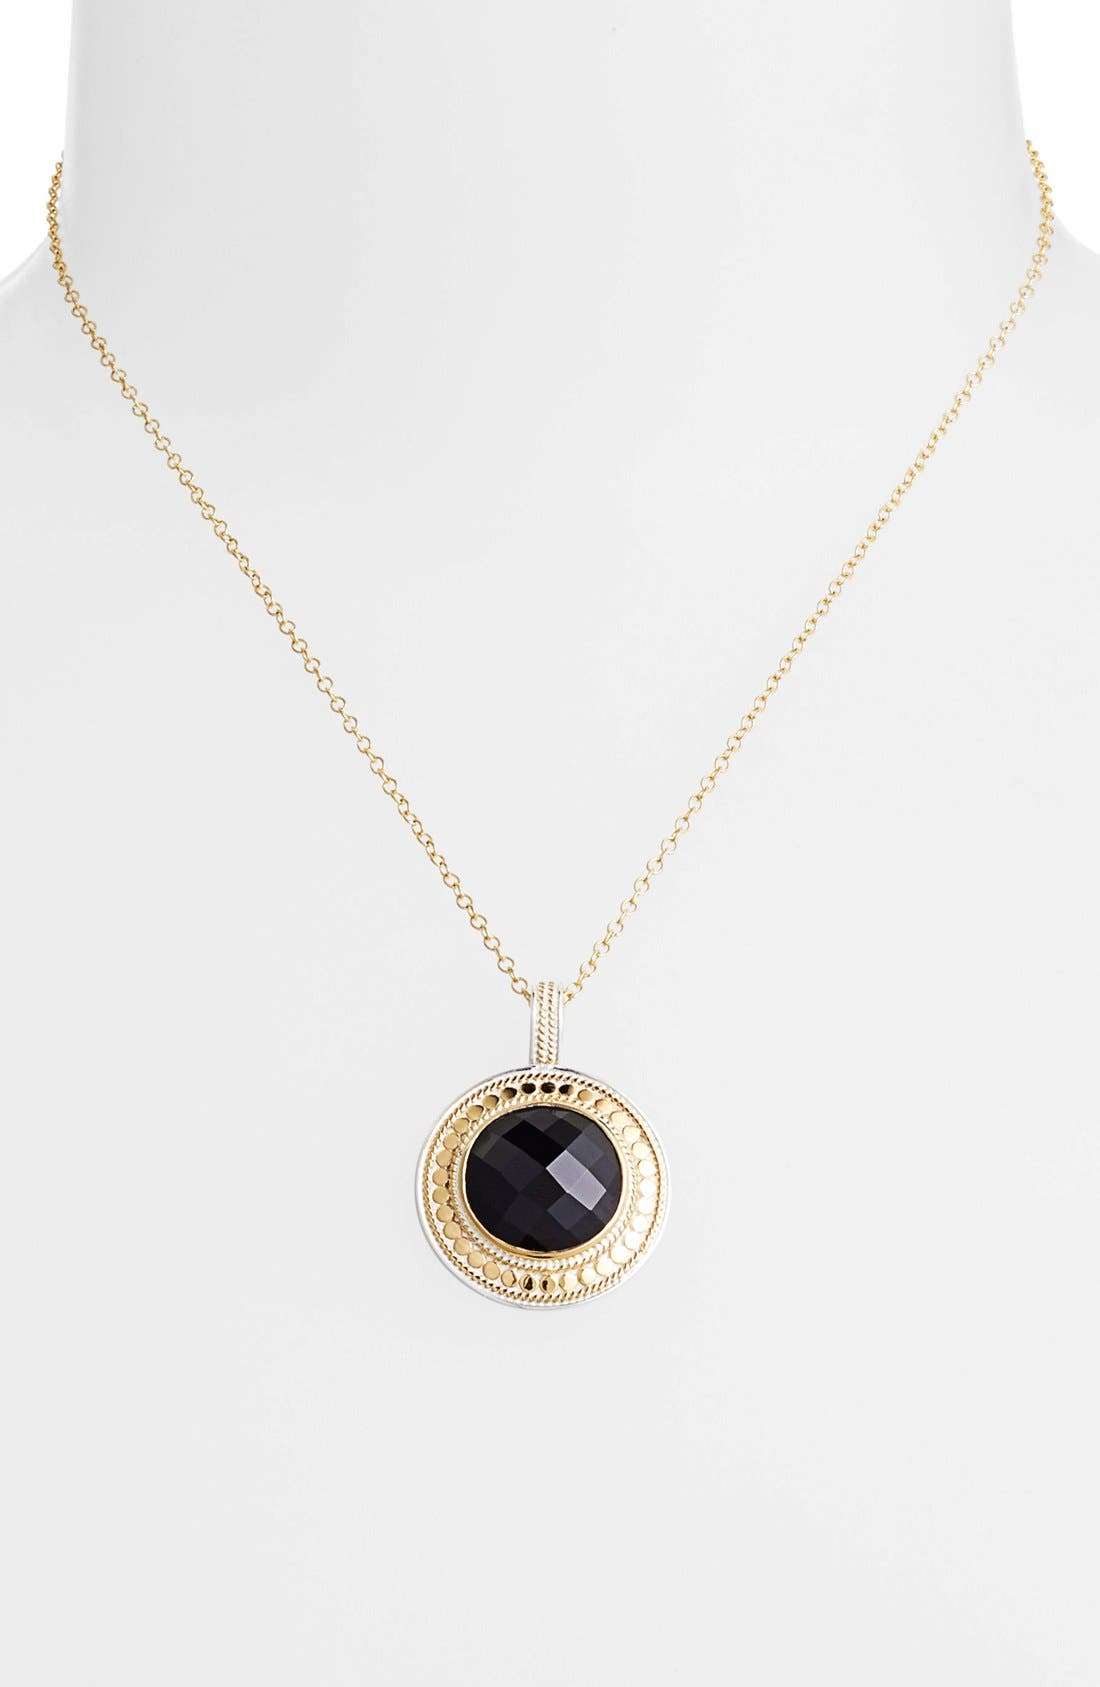 Alternate Image 1 Selected - Anna Beck 'Gili' Large Pendant Necklace